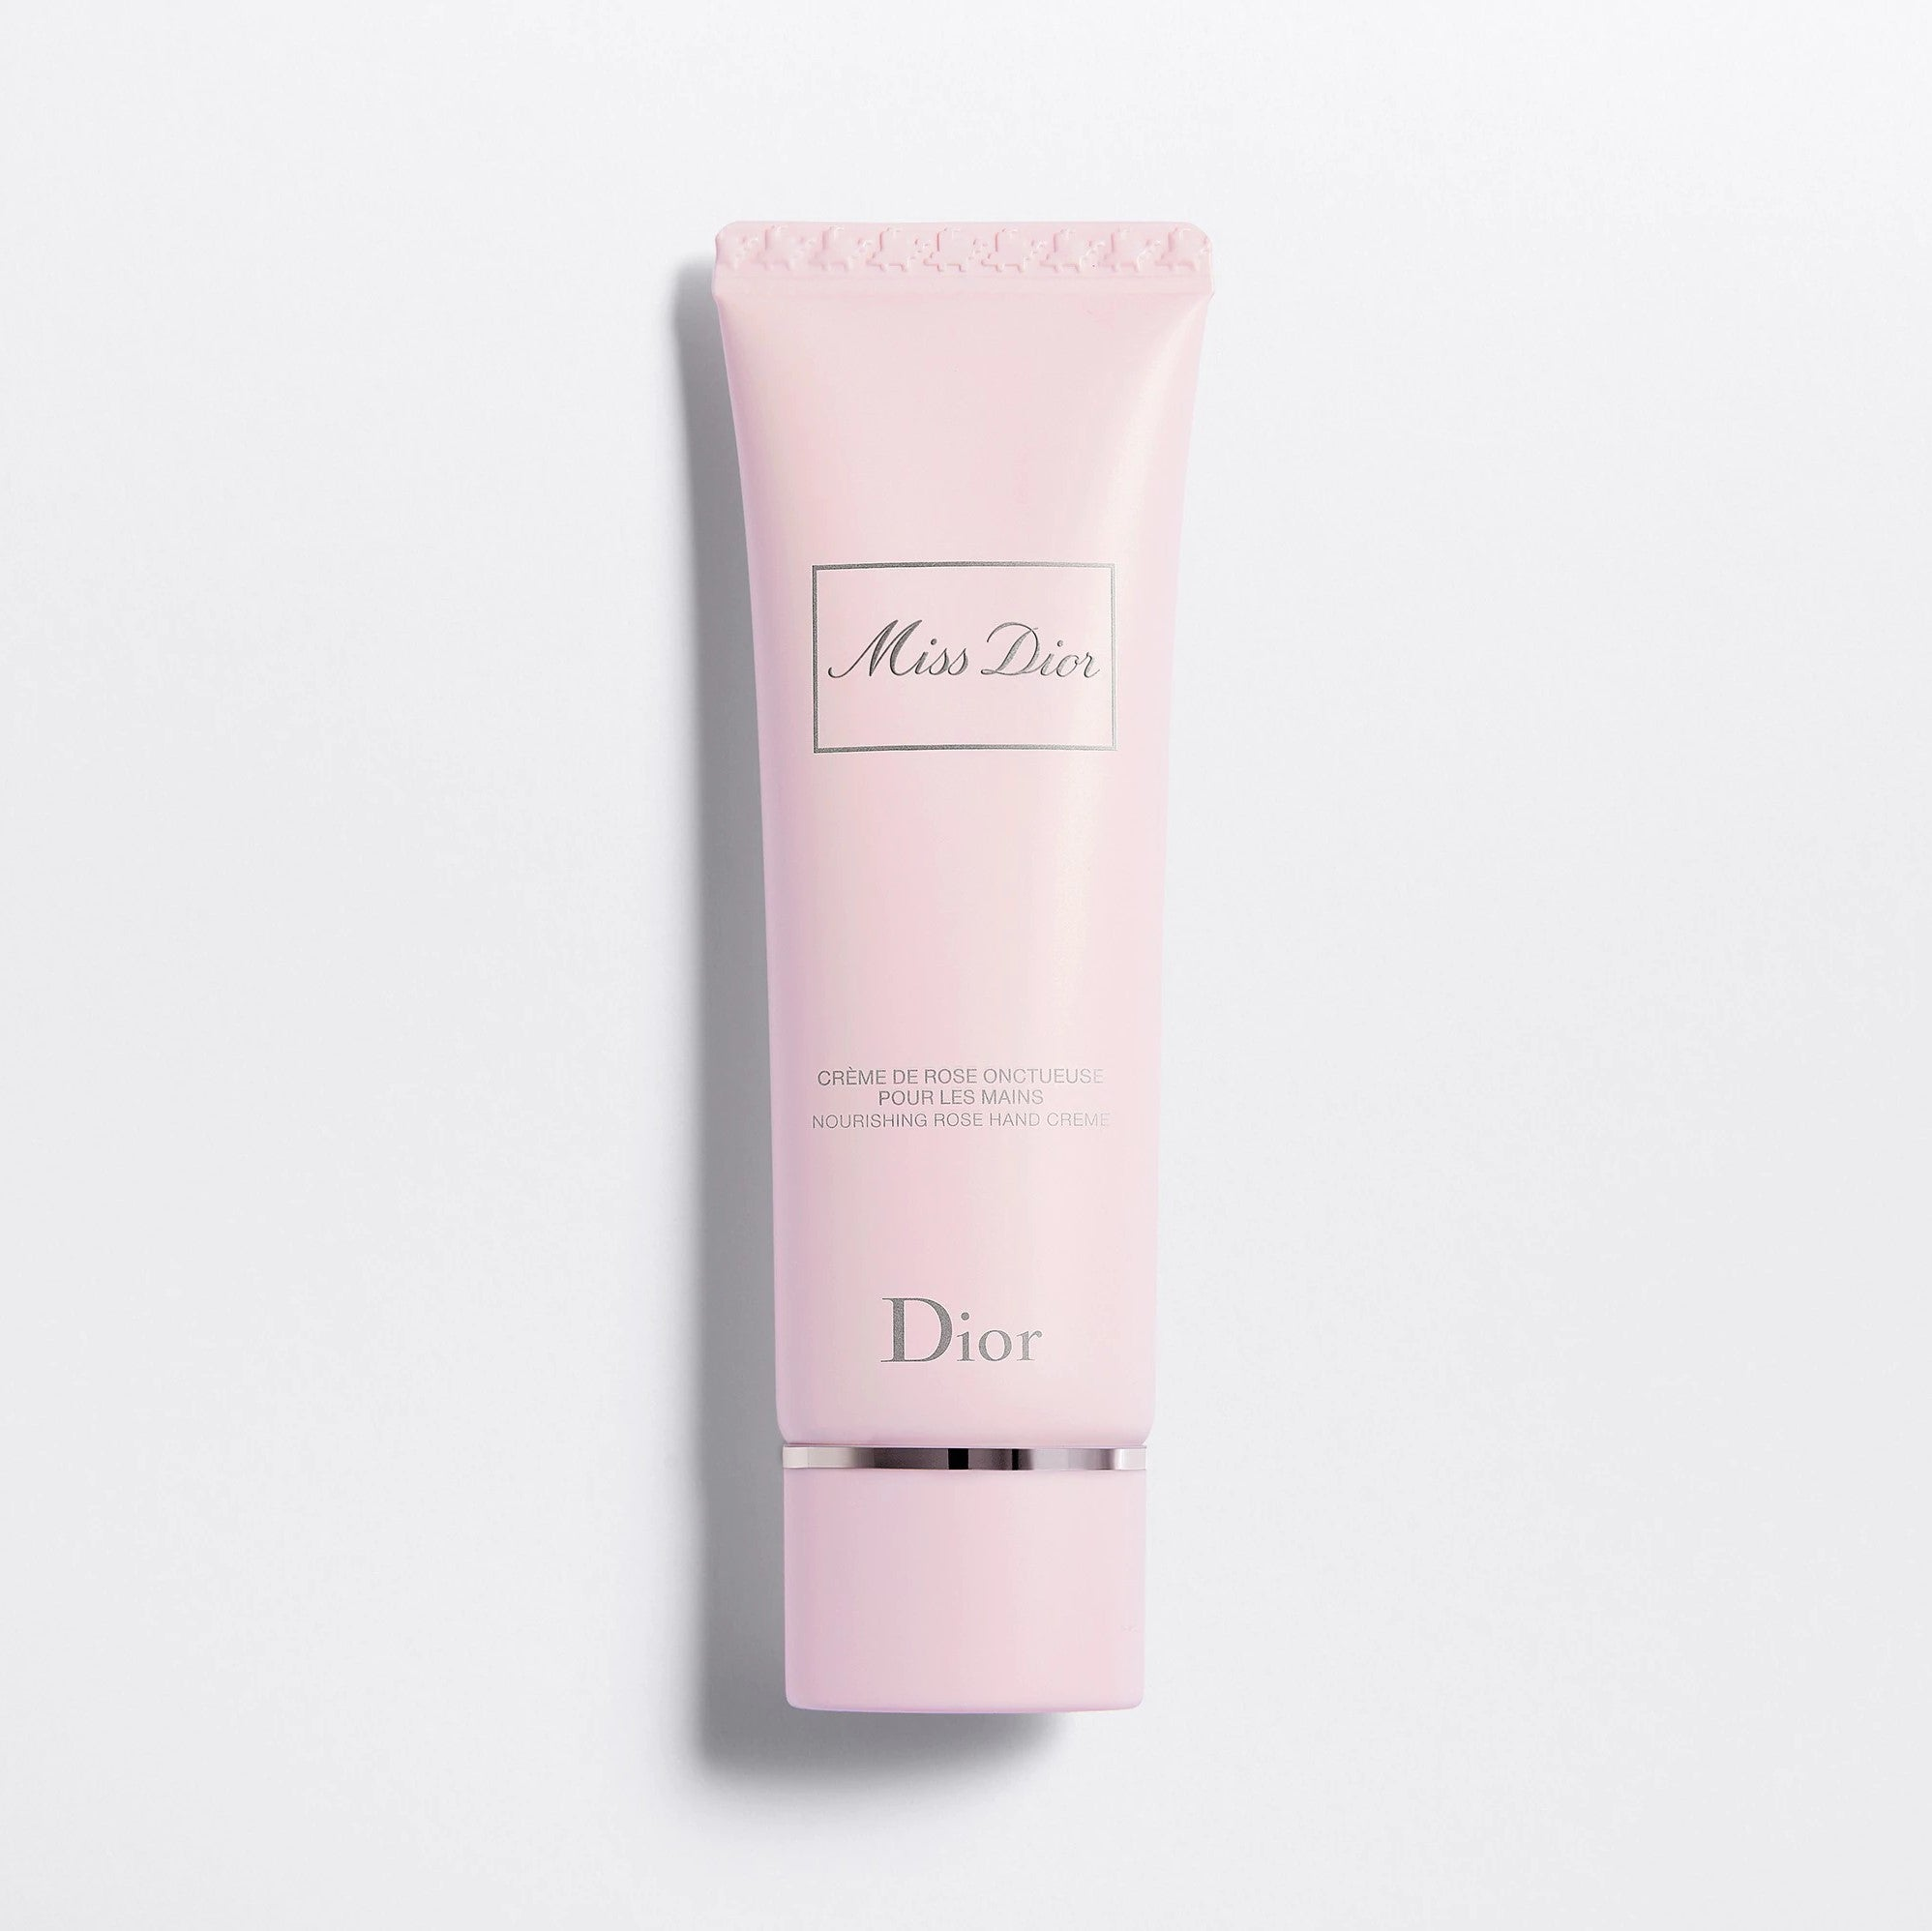 Miss Dior | Nourishing rose hand cream